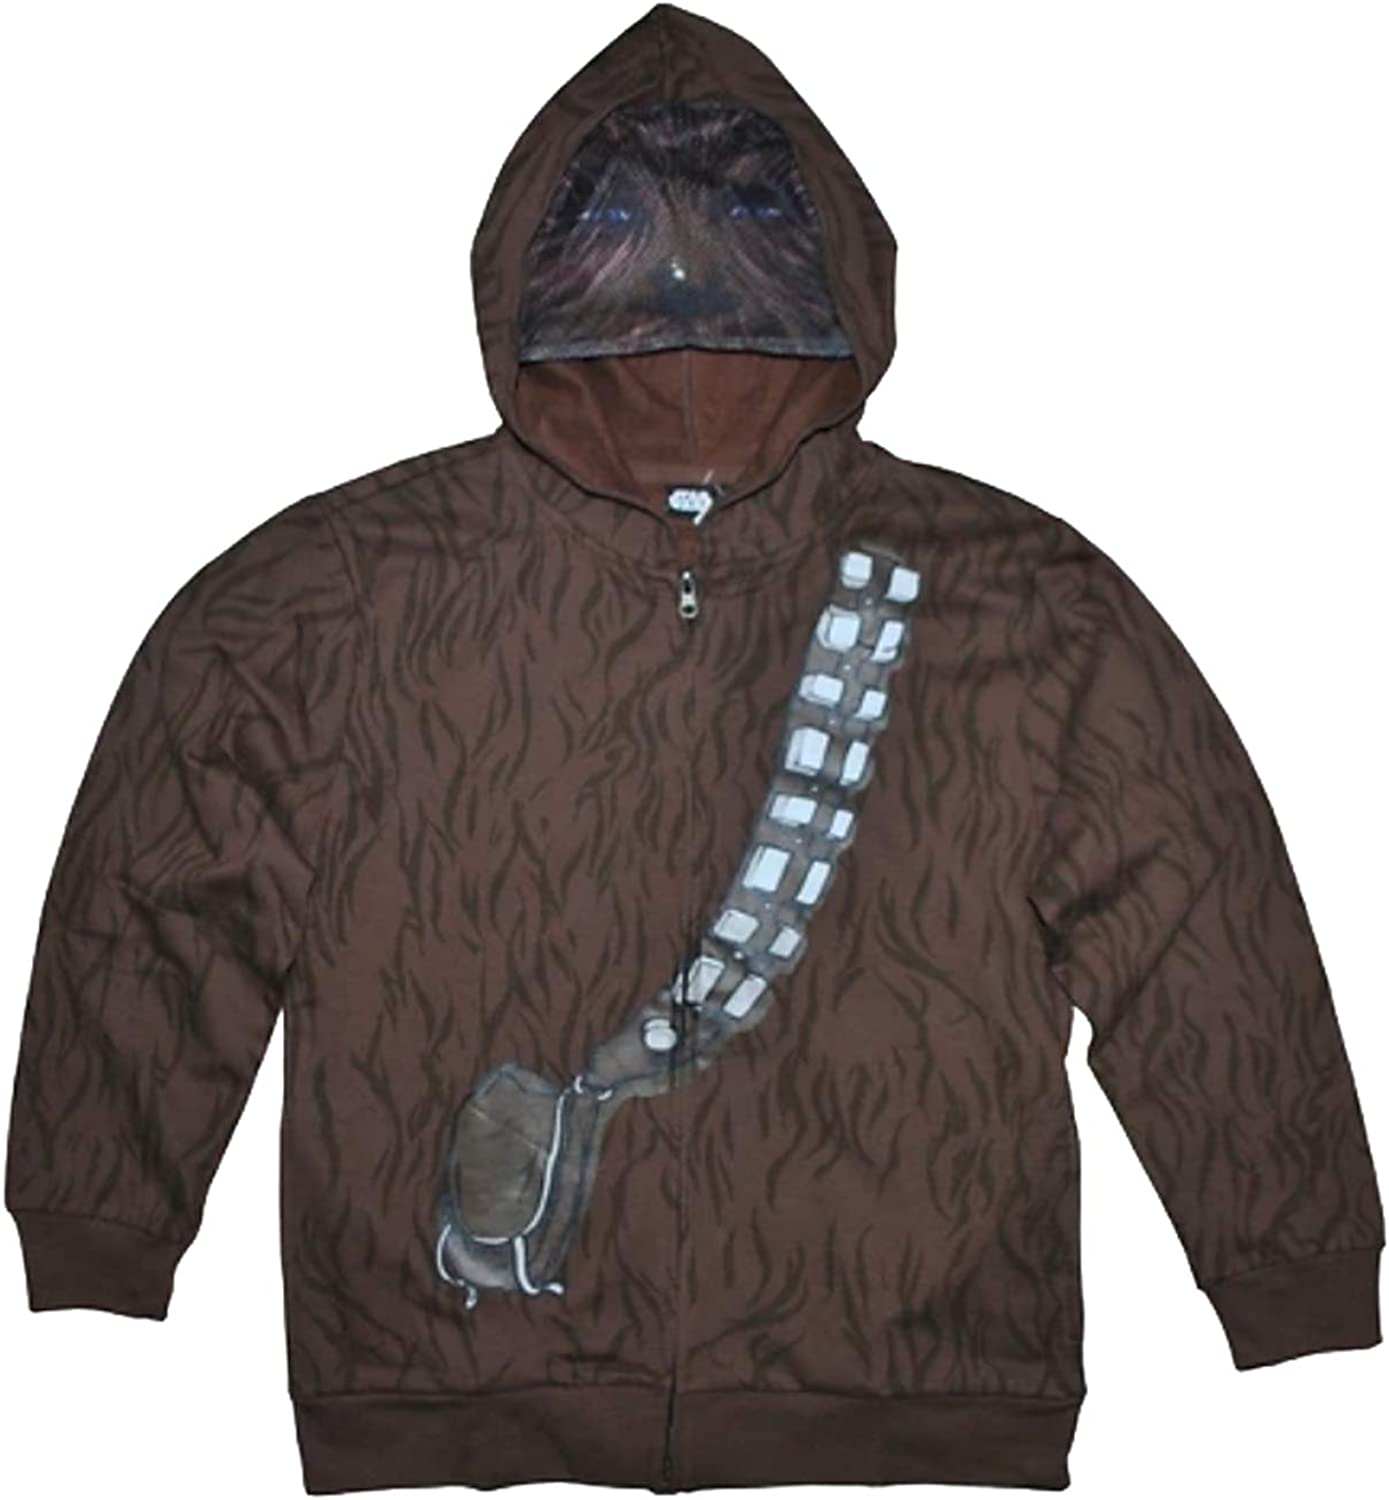 Disney Star 2021 autumn and winter new Wars Little Big X Boys Character Chewbacca Hoodie Selling and selling